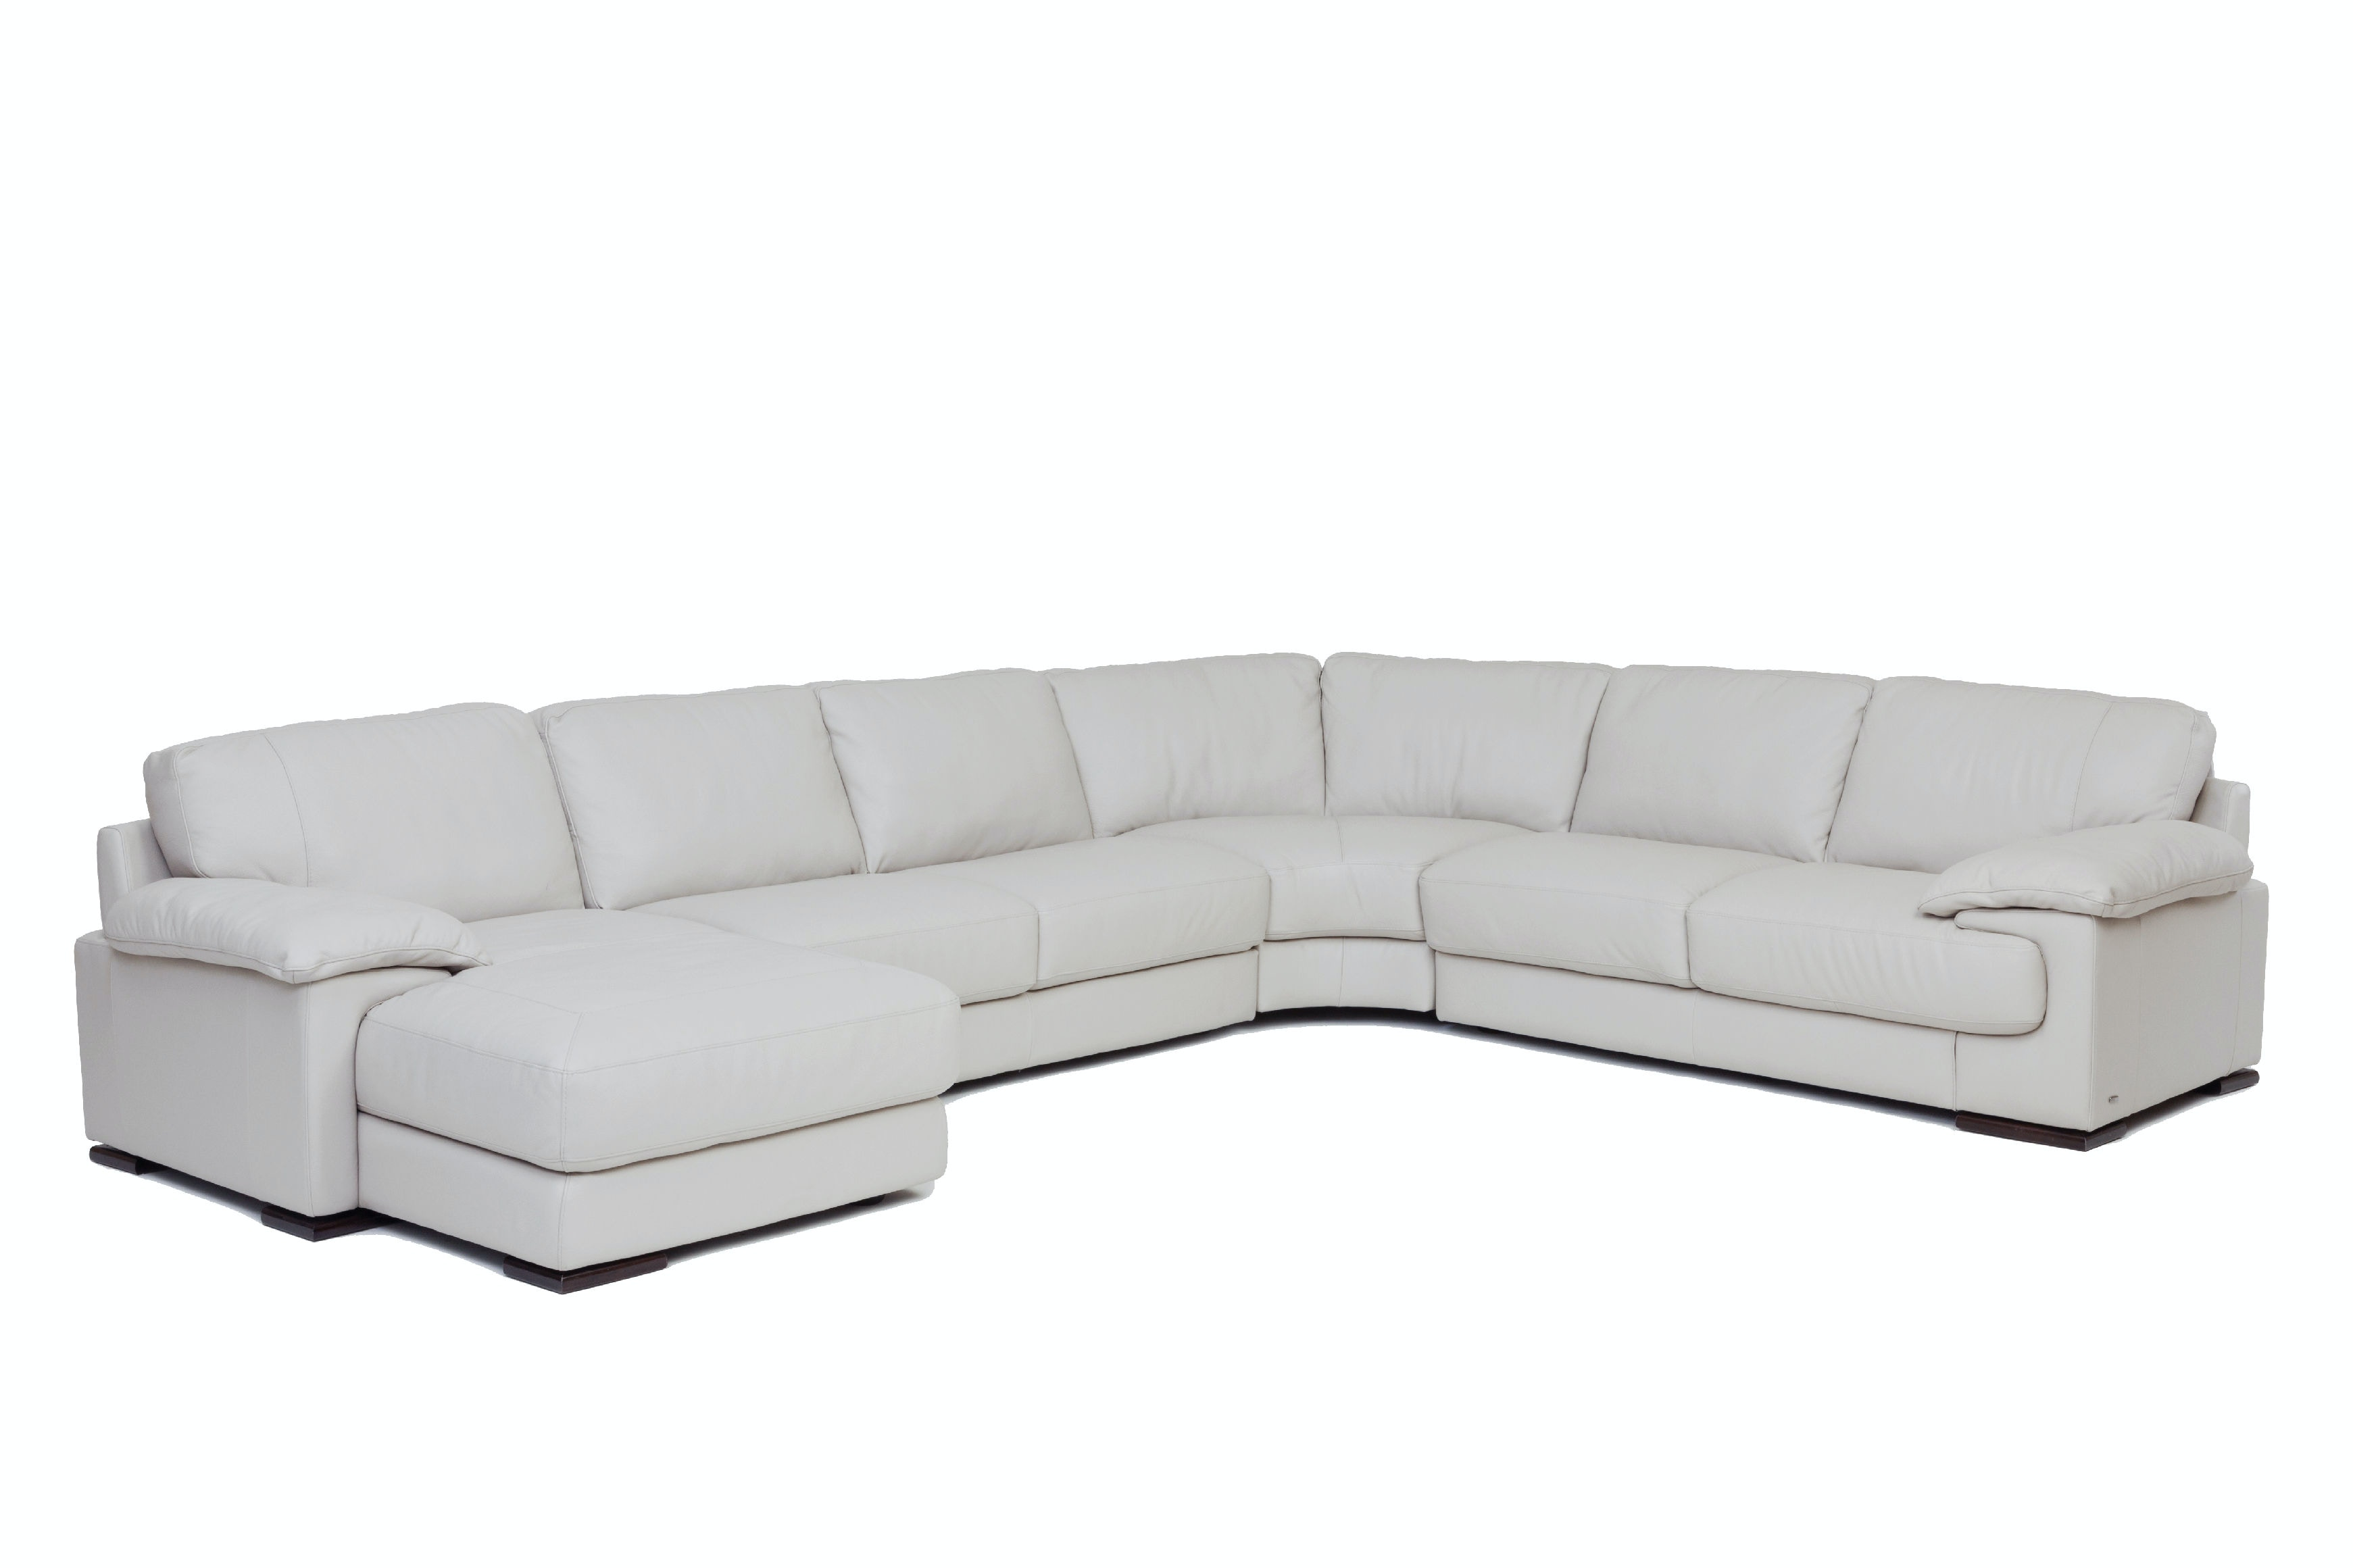 Denver 4-Piece Leather Sectional - SMOKE GPL115  sc 1 st  Star Furniture : natuzzi denver sectional - Sectionals, Sofas & Couches